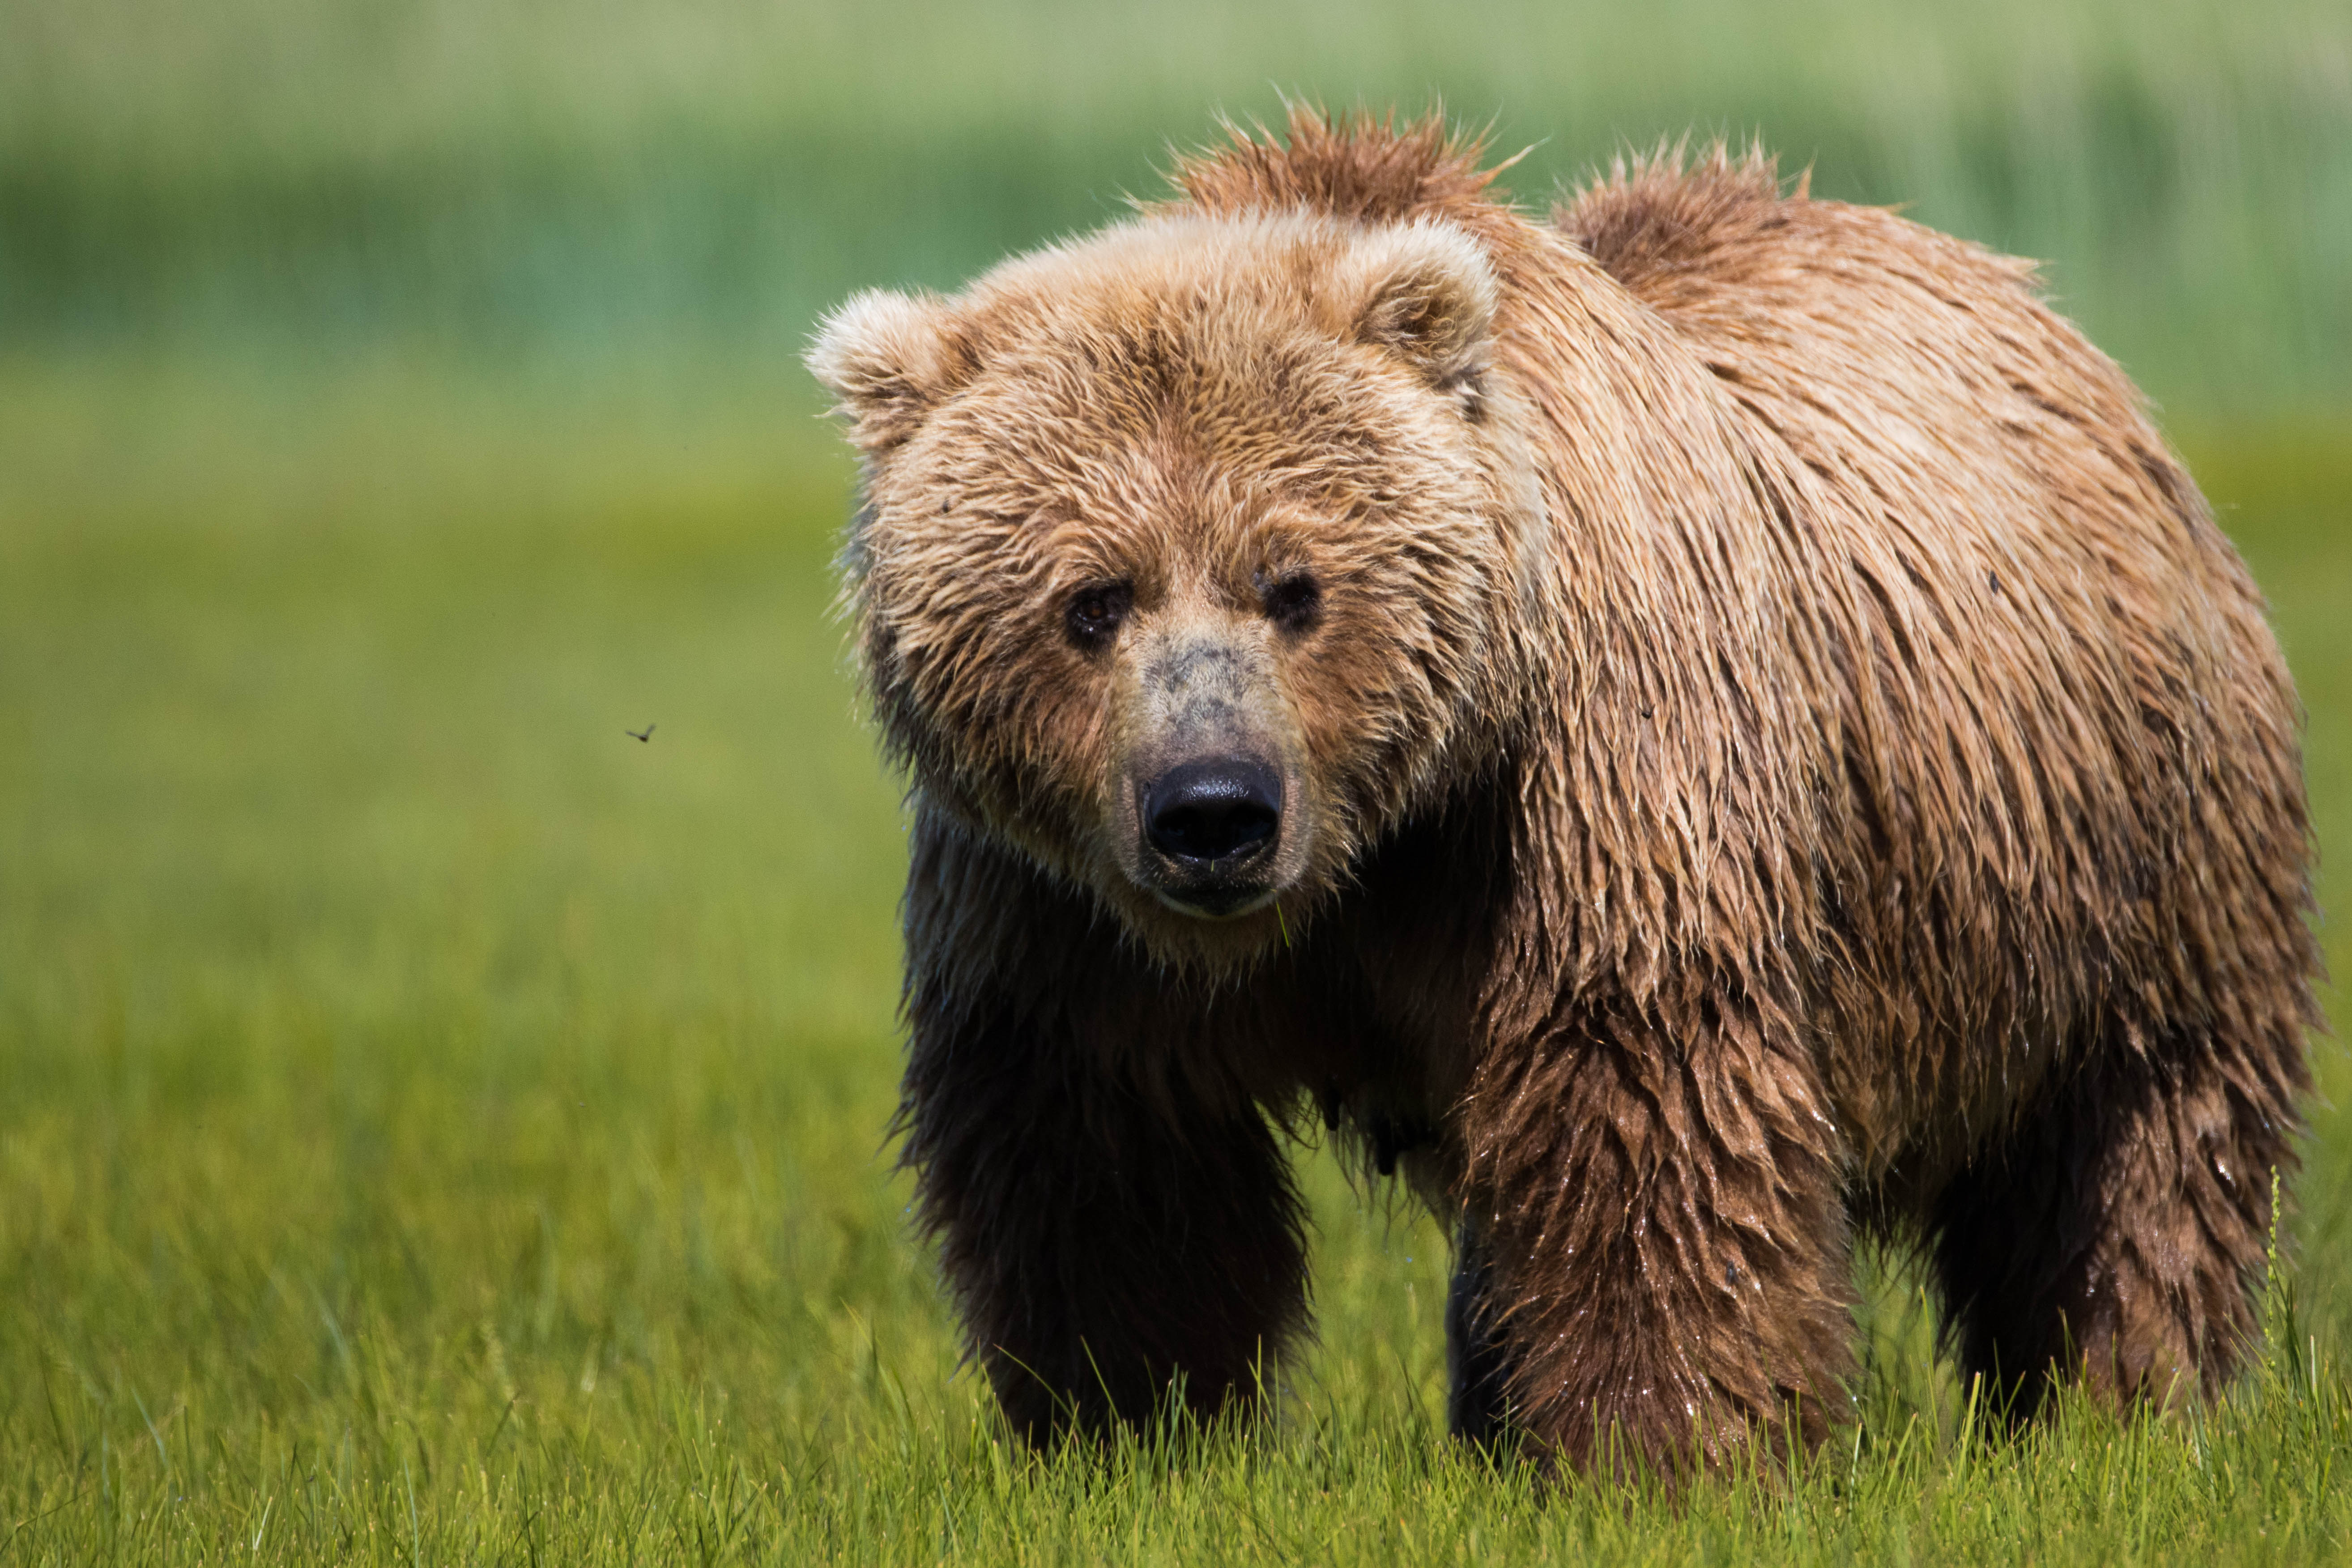 Thirteen Yards in One Second: Why You Can Never Outrun a Charging Bear